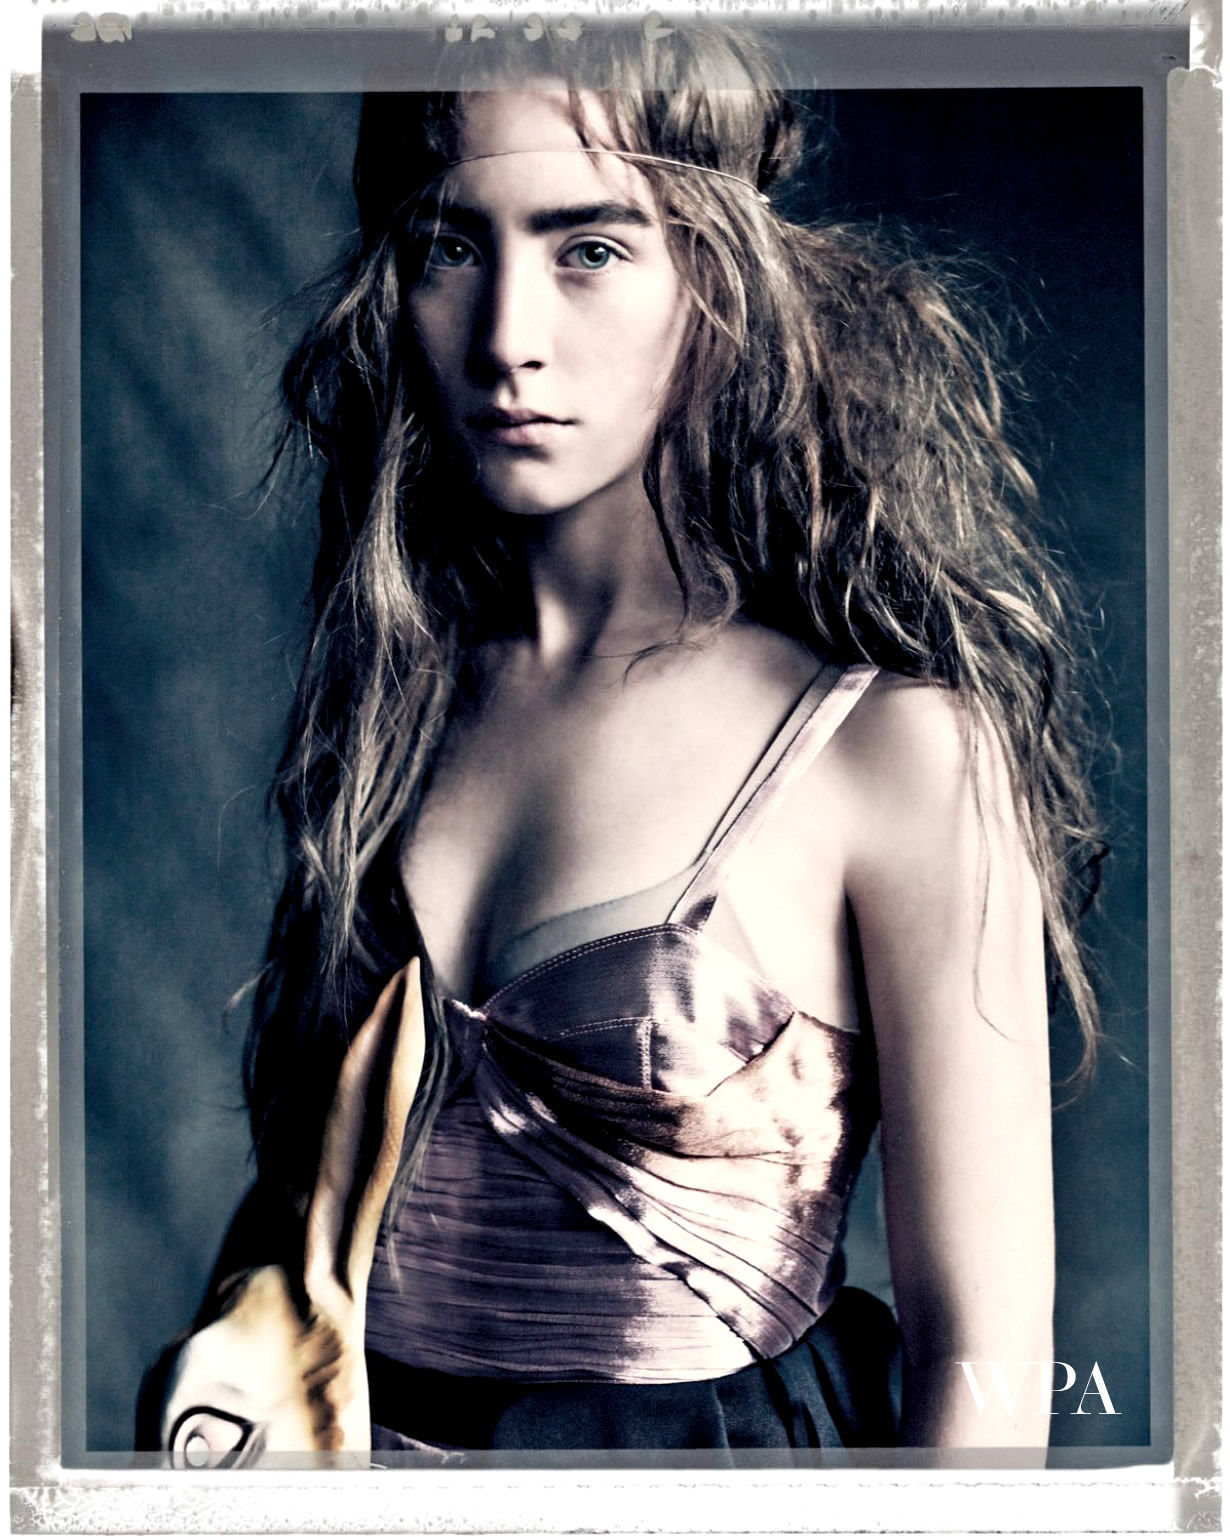 Saoirse Ronan: Put a Spell On You - Vogue UK by Paolo Roversi, April 2013